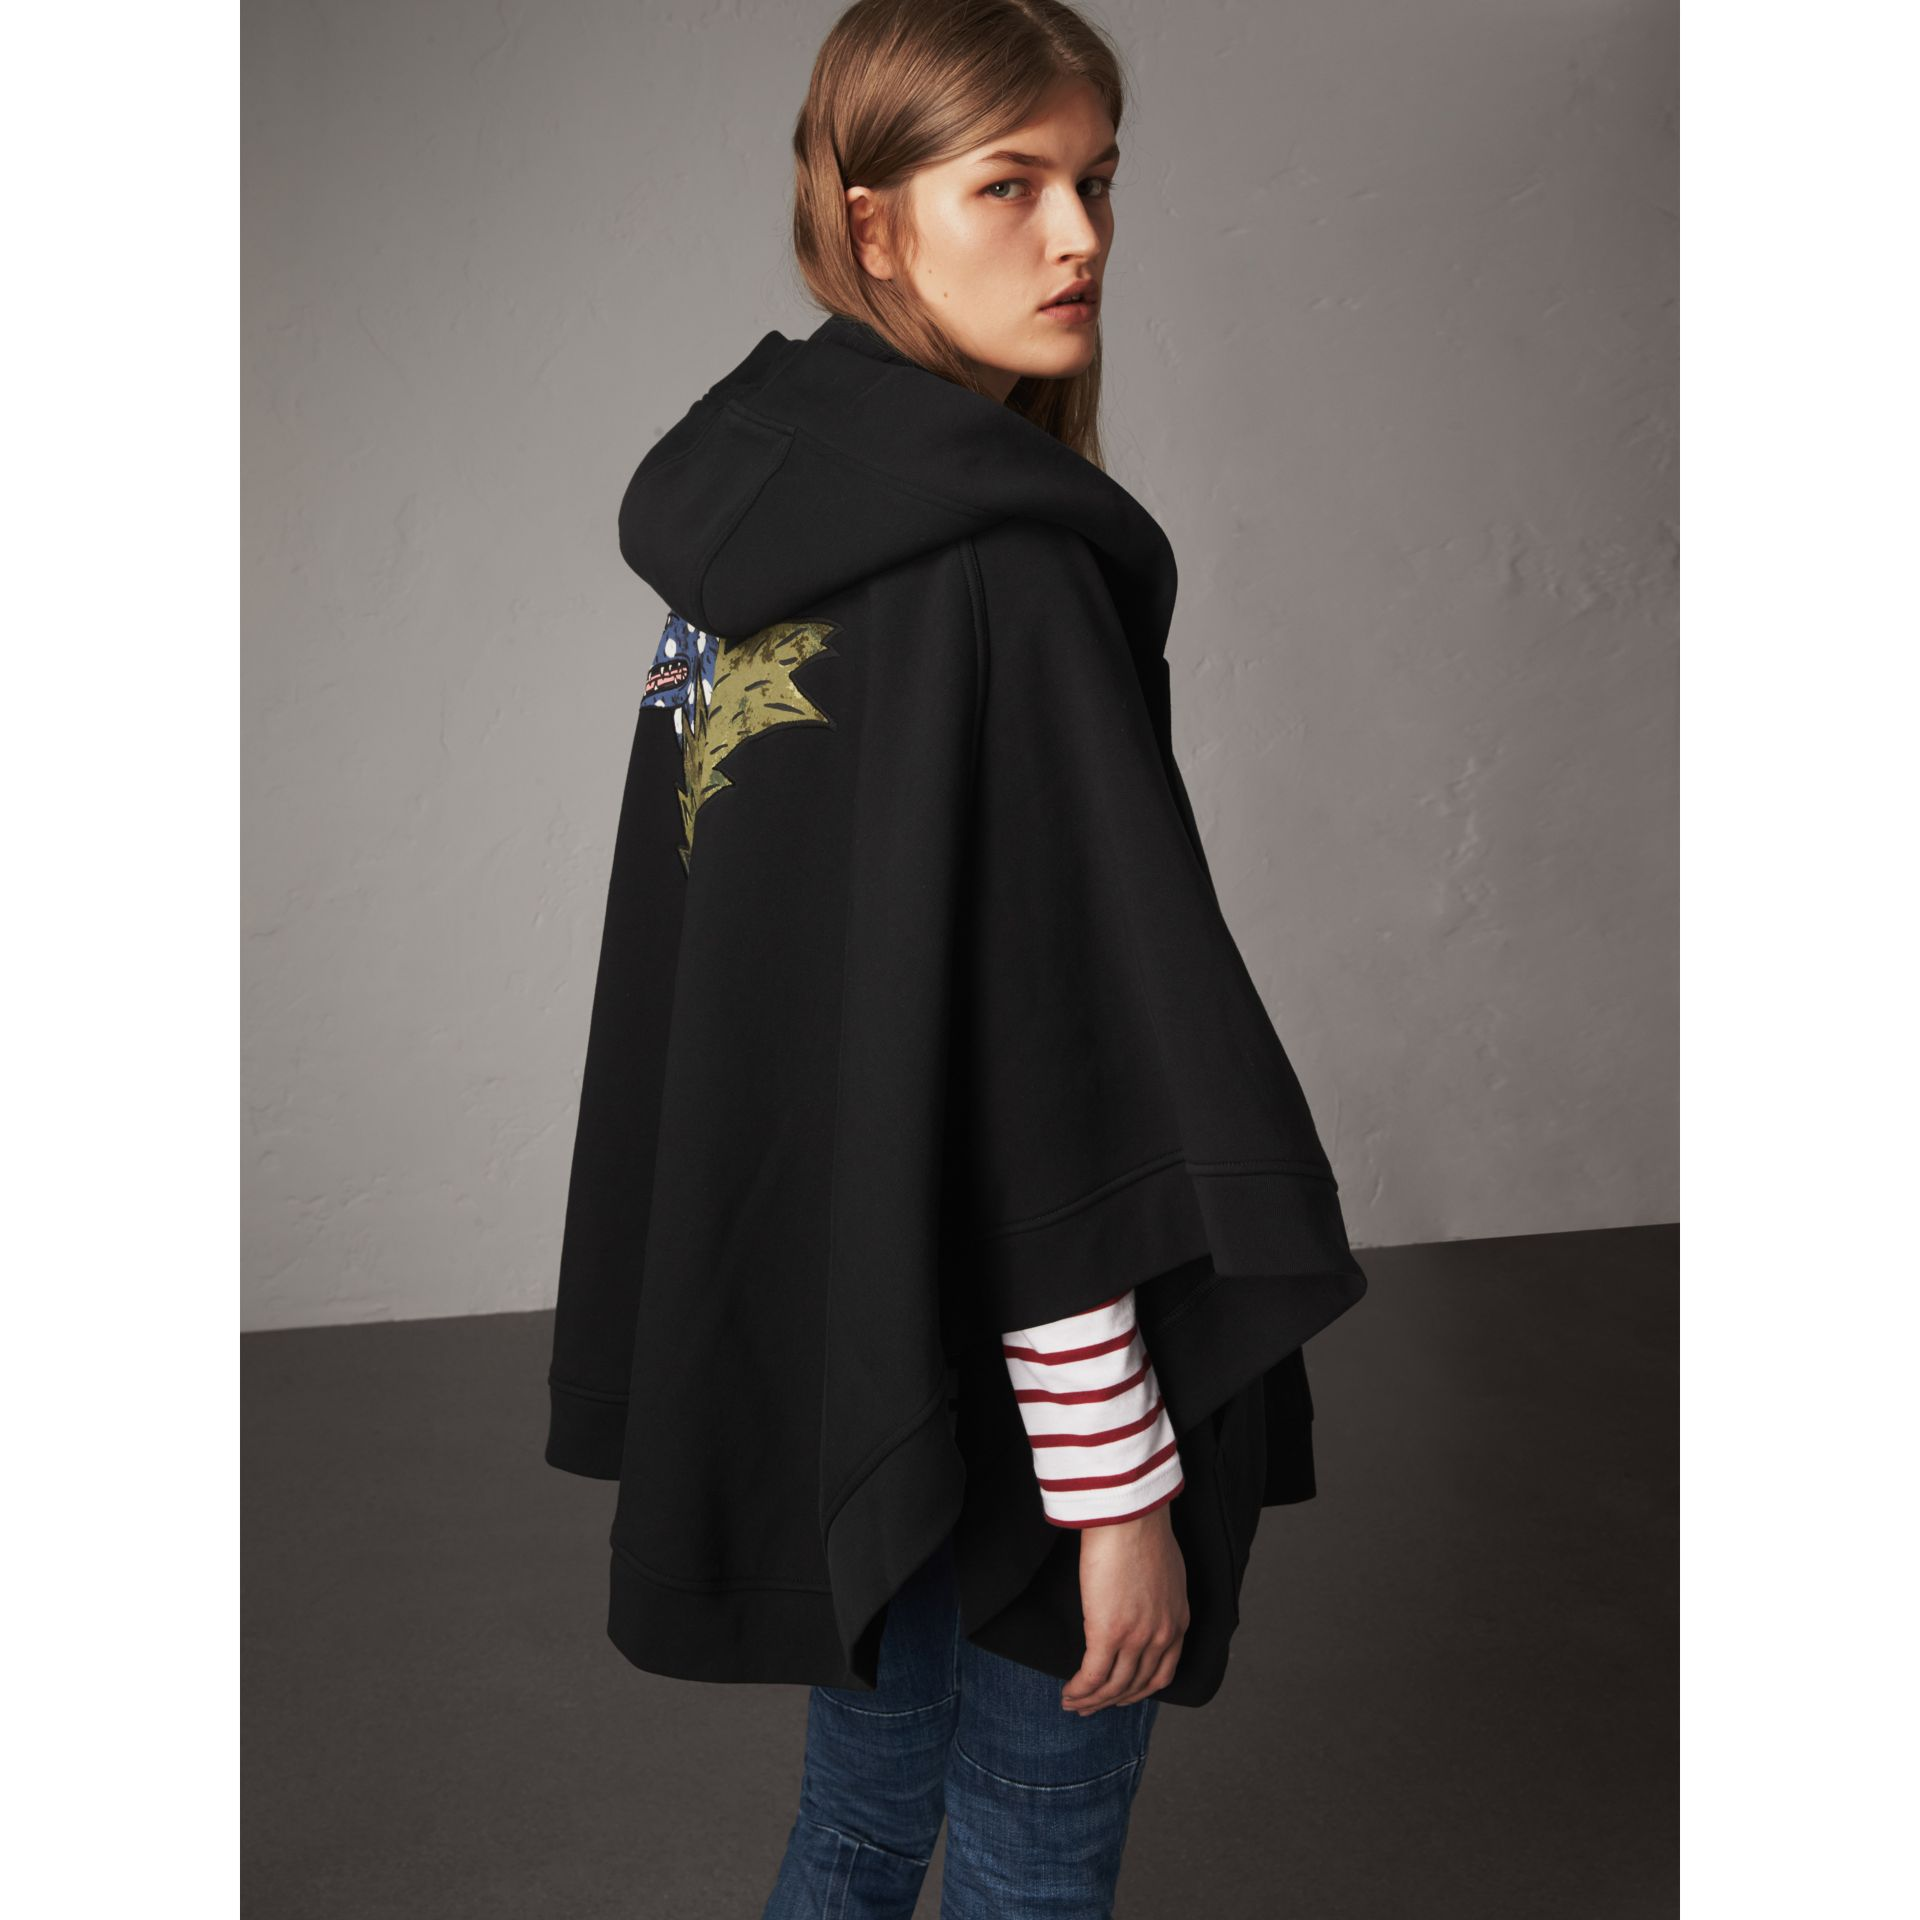 Beasts Motif Hooded Sweatshirt Poncho in Black - Women | Burberry - gallery image 1